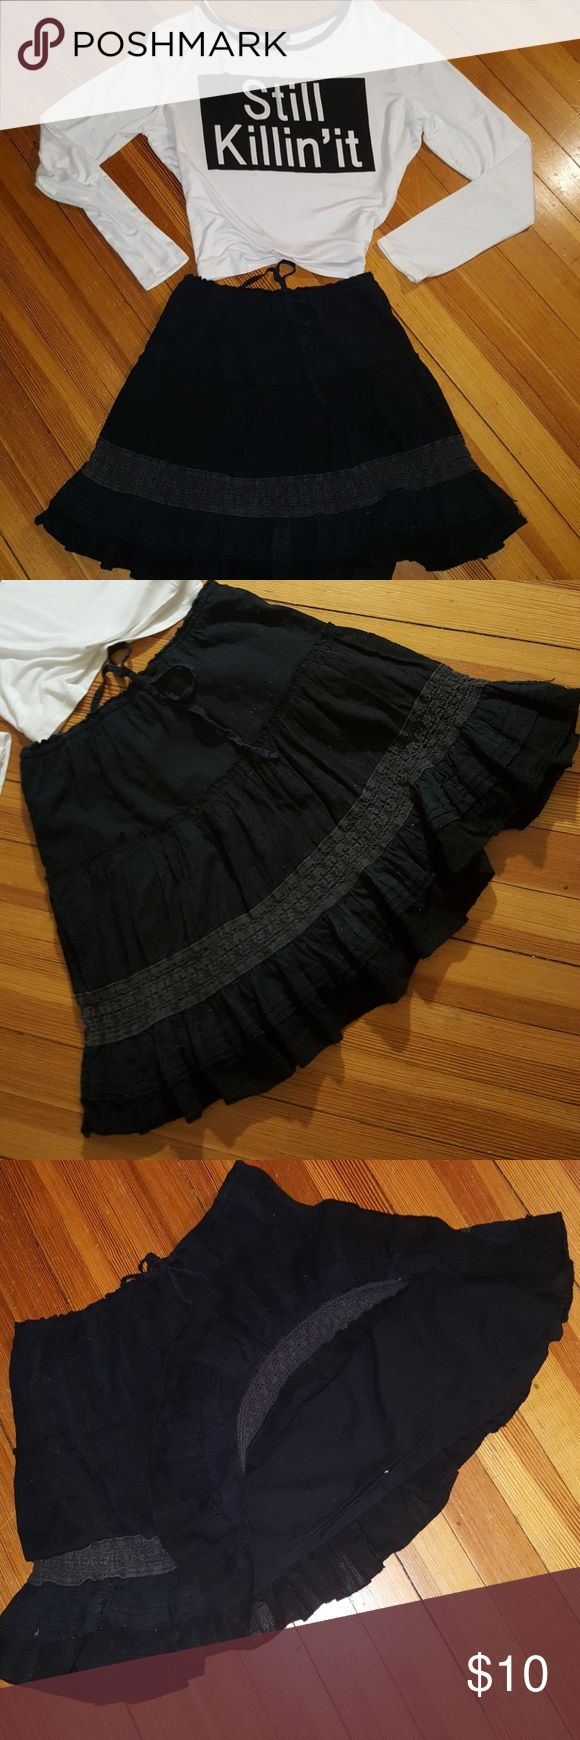 Fabulous Double Layered Skirt Awesome layered skirt. Ruffled down with a round cotton layer underneath. A semi sheer embroidered band before last tier. And lastly it is a drawstring. @barbarajeannef Aeropostale Skirts Circle & Skater